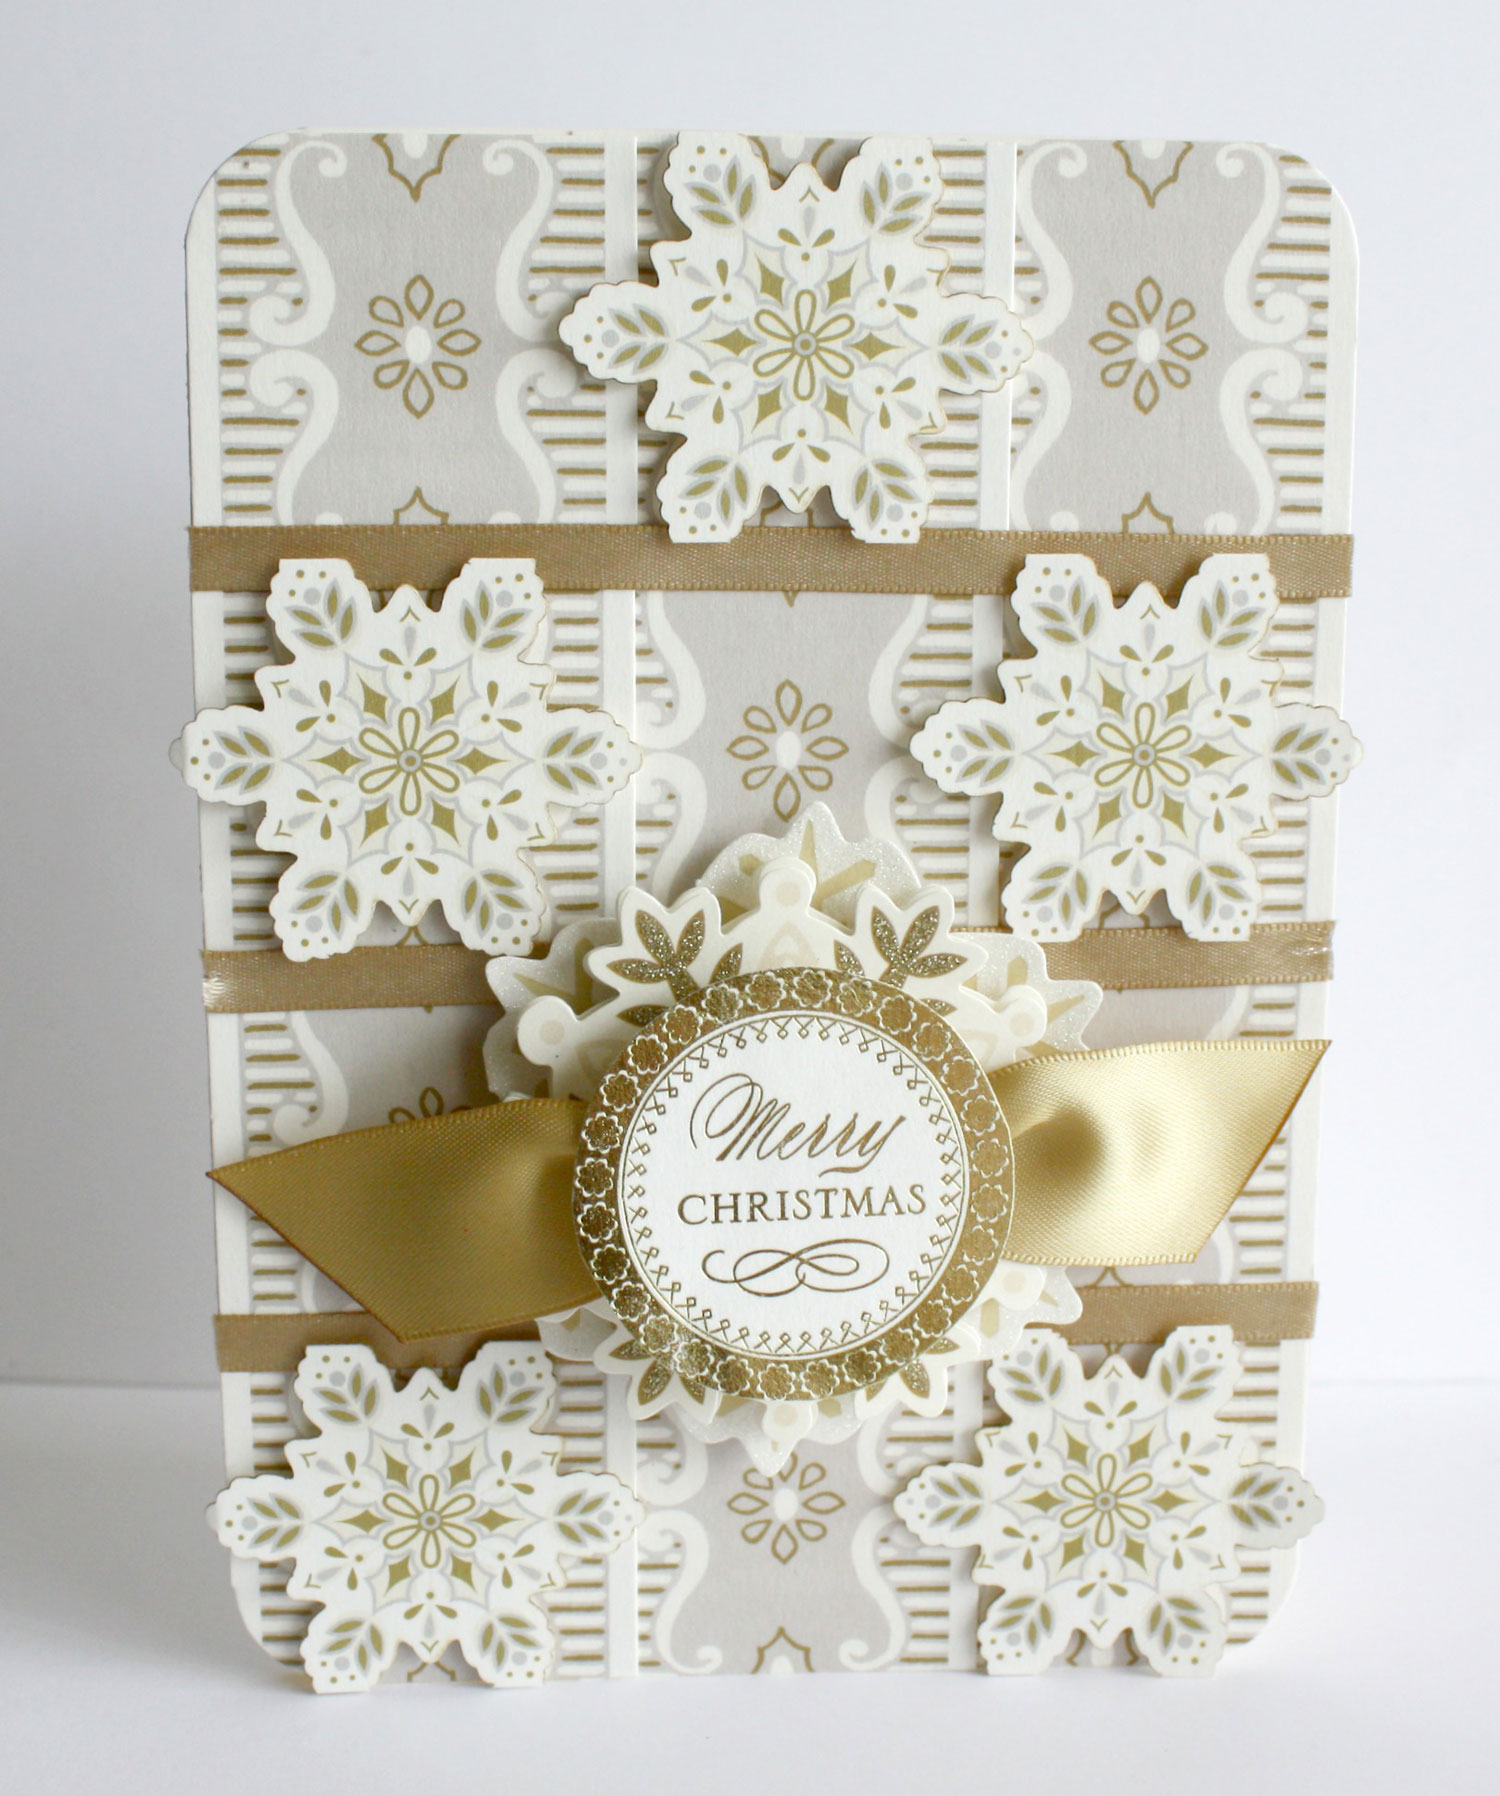 Christamas Cards - Cards by alice